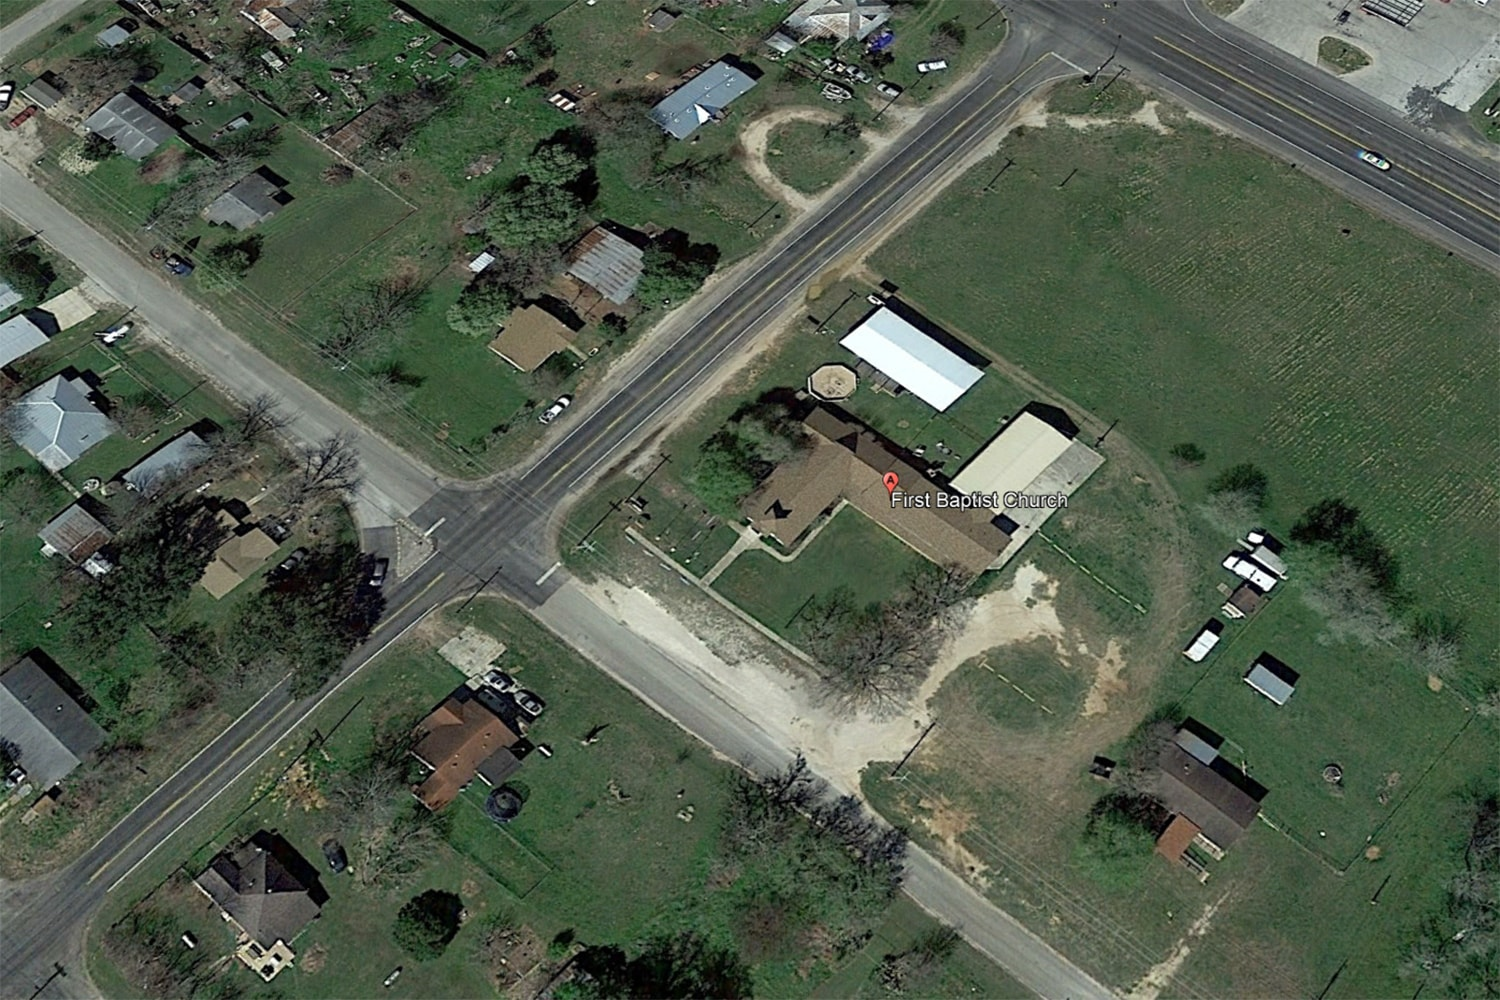 Image A Google Earth satellite view of First Baptist Church in Sutherland Springs Texas